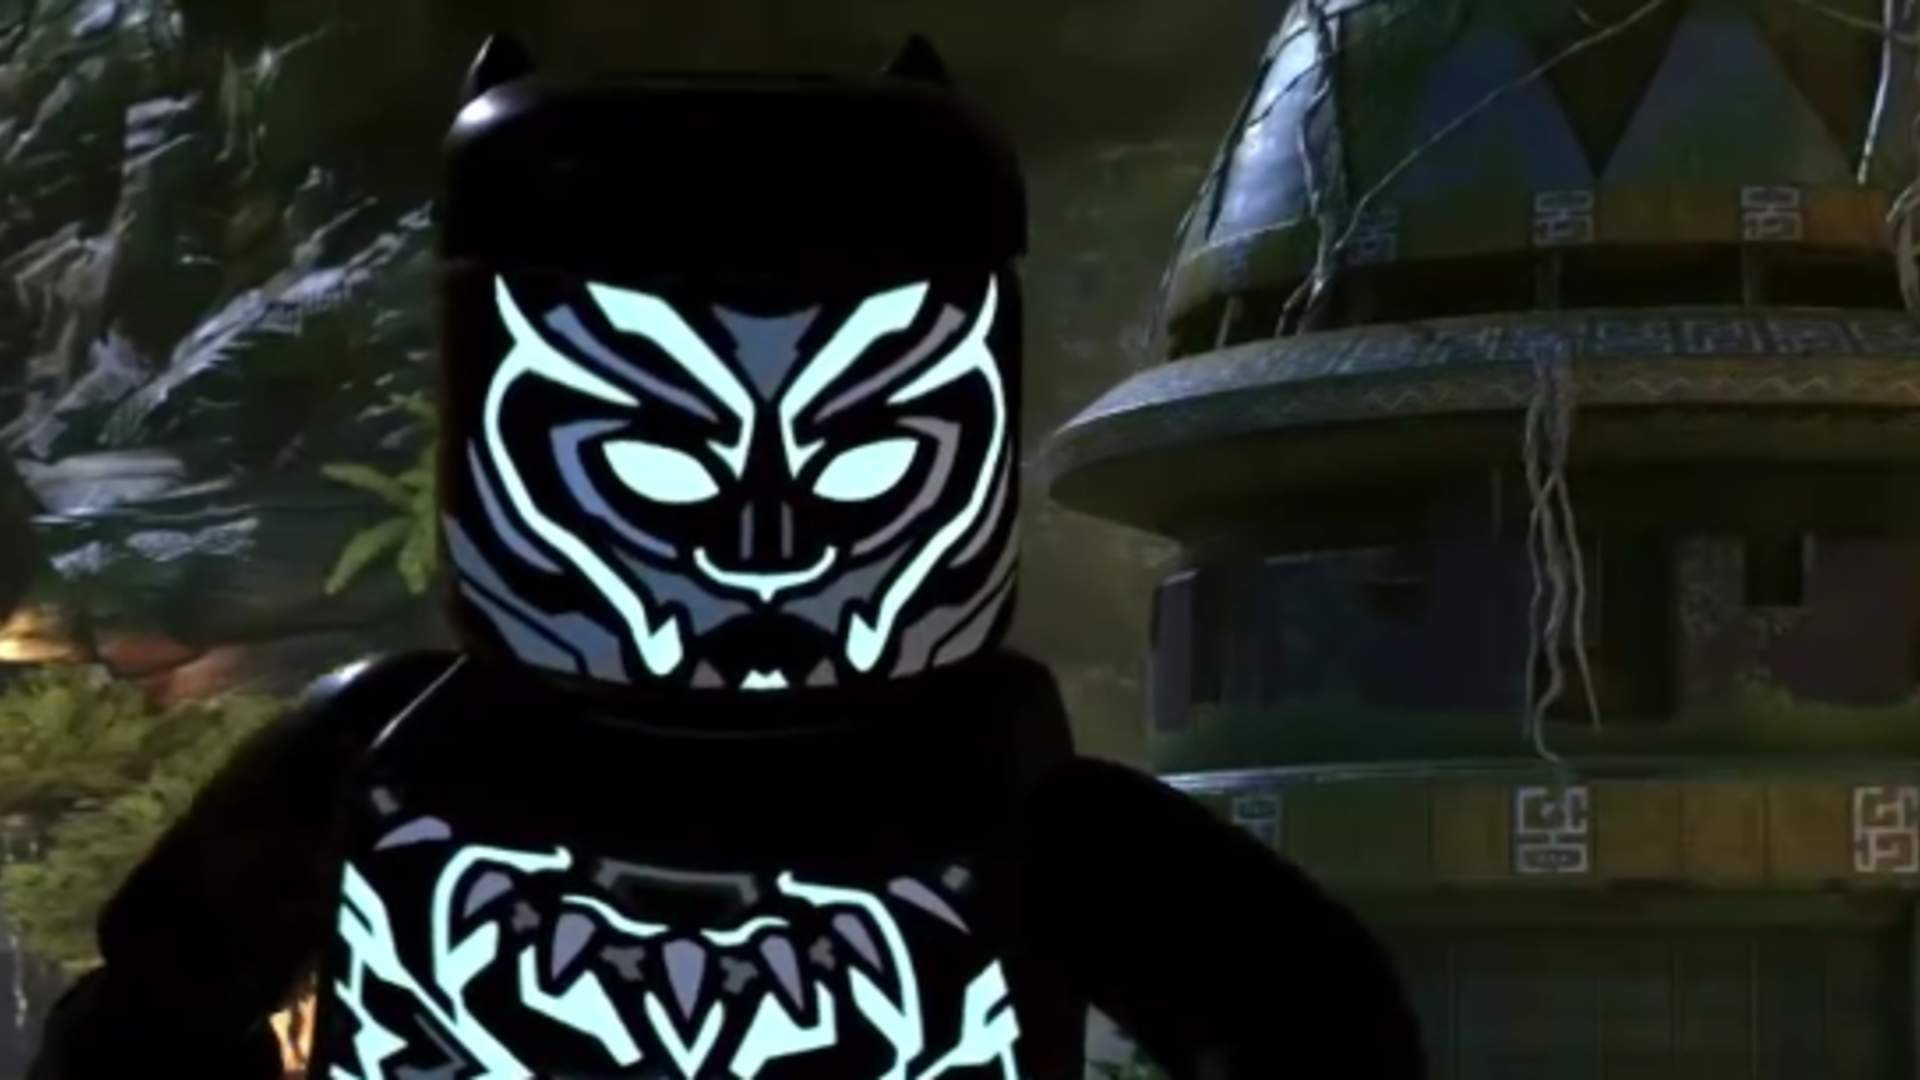 Black Panther DLC for Lego Marvel Super Heroes 2 Has Me Wanting a 1920x1080